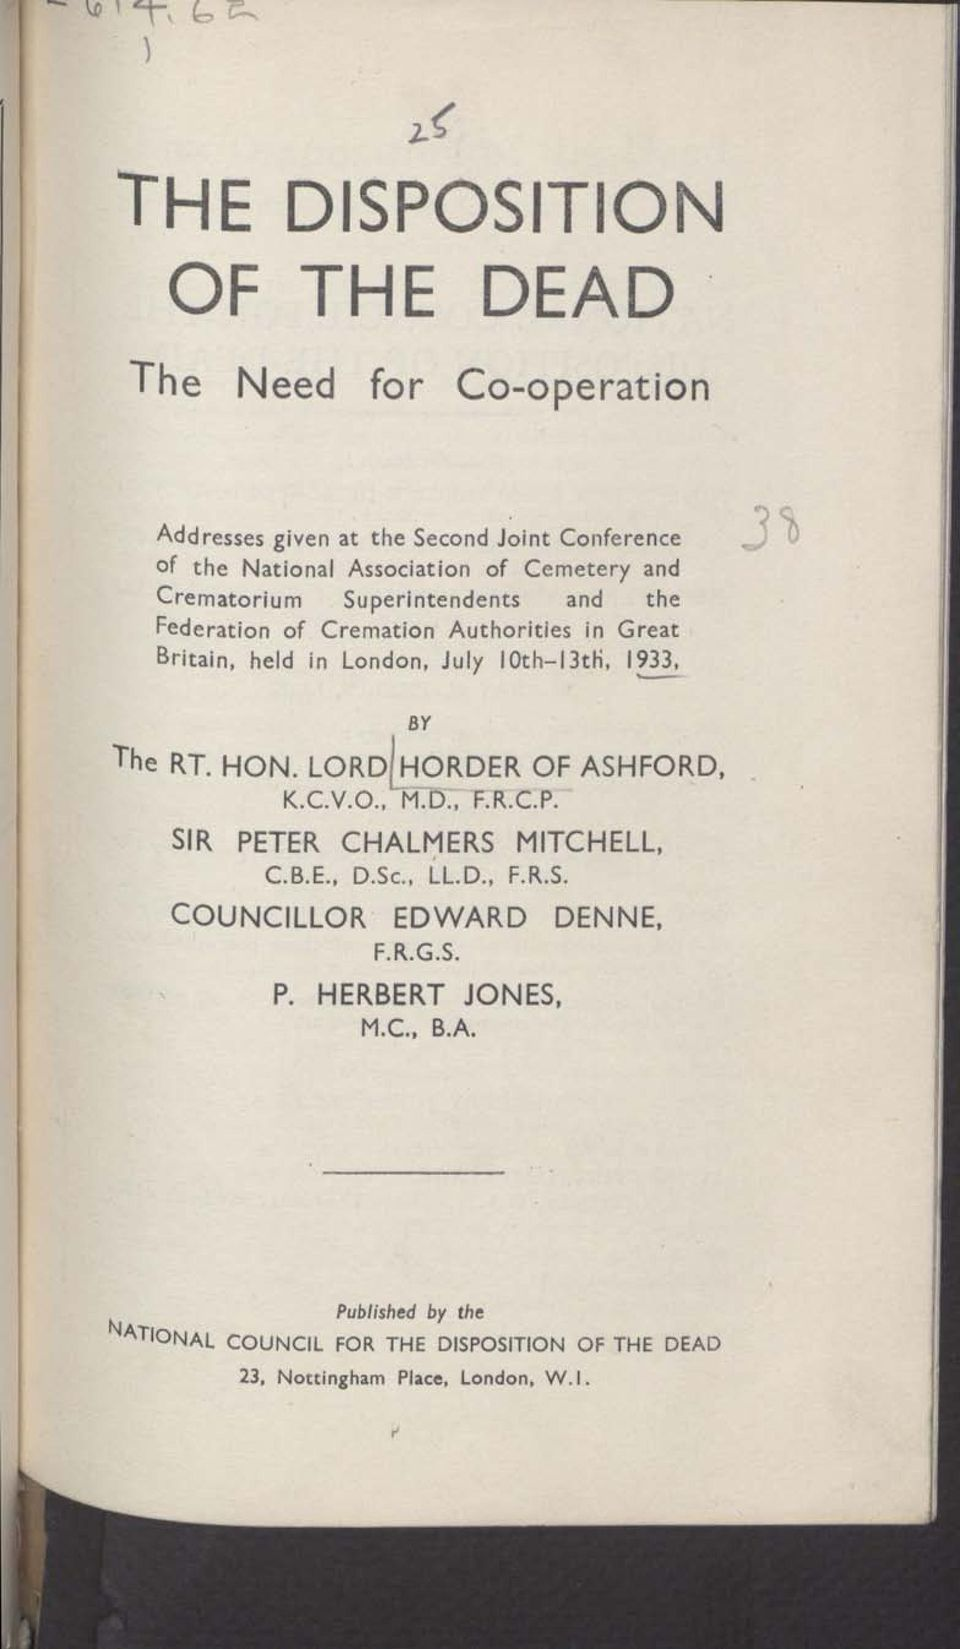 BY The RT. HON. LORD1HORDER OF ASHFORD, K.C.V.O., M.D., F.R.C.P. SIR PETER CHALMERS MITCHELL, C.B.E., D.Sc., LL.D., F.R.S. COUNCILLOR EDWARD DENNE, F.